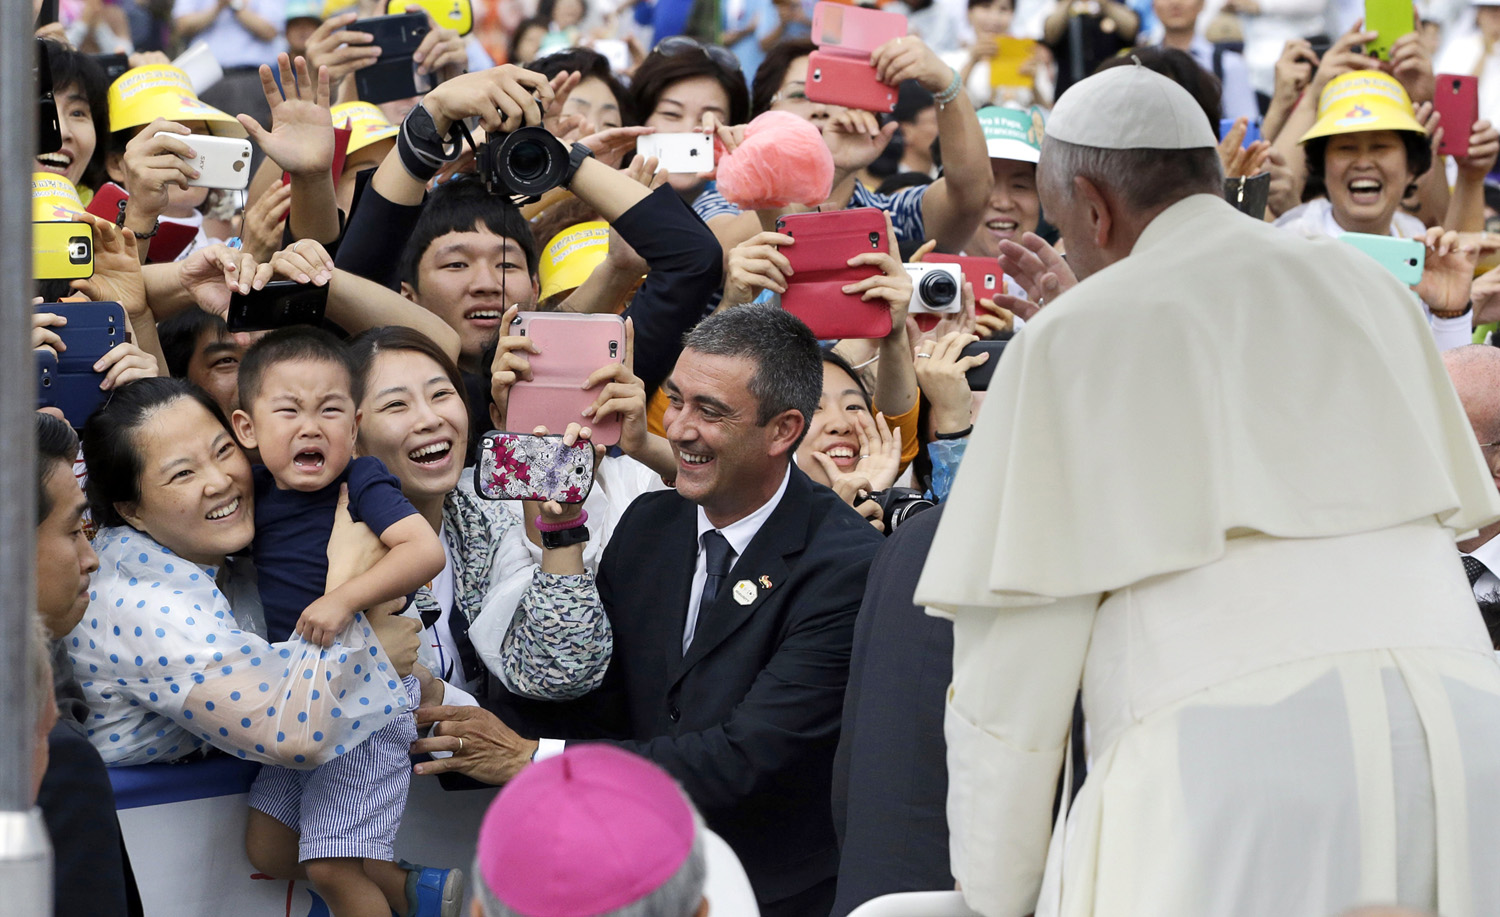 The Pope gives his blessings as he arrives Aug. 17 for a Mass in the town of Haemi, south of South Korea's capital, Seoul